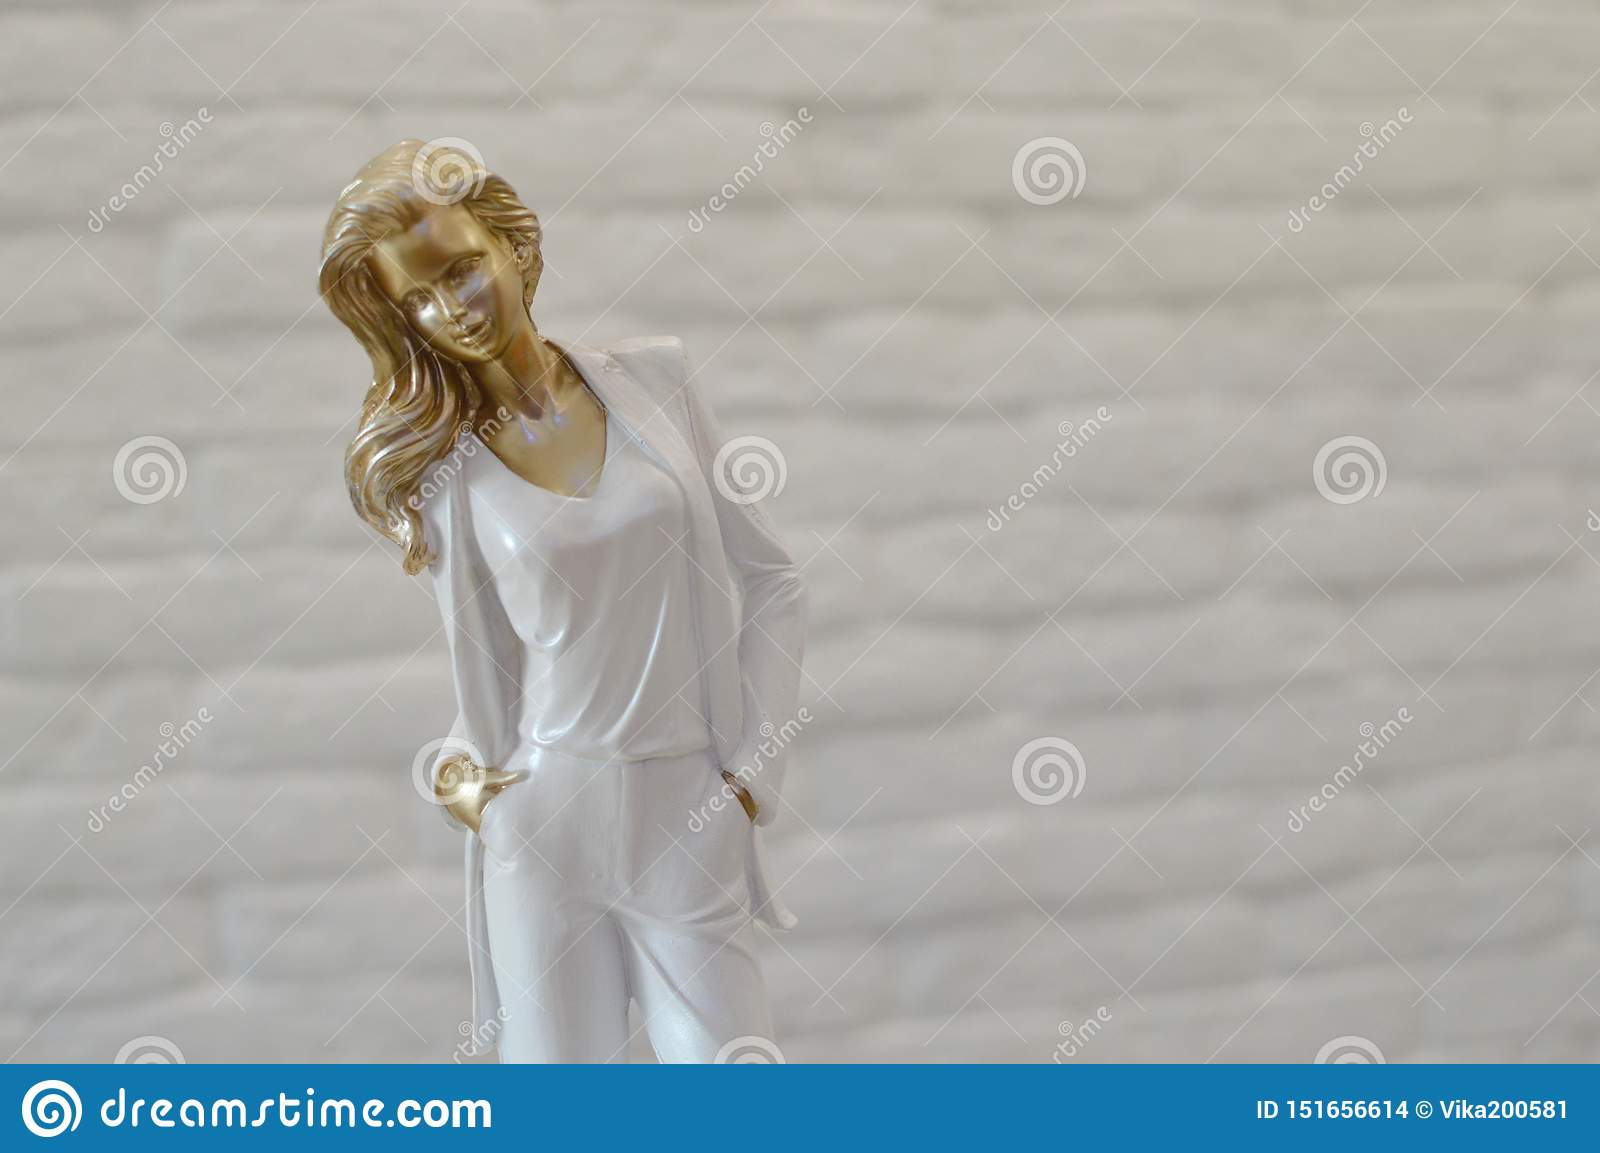 Stylish figurine of the young woman